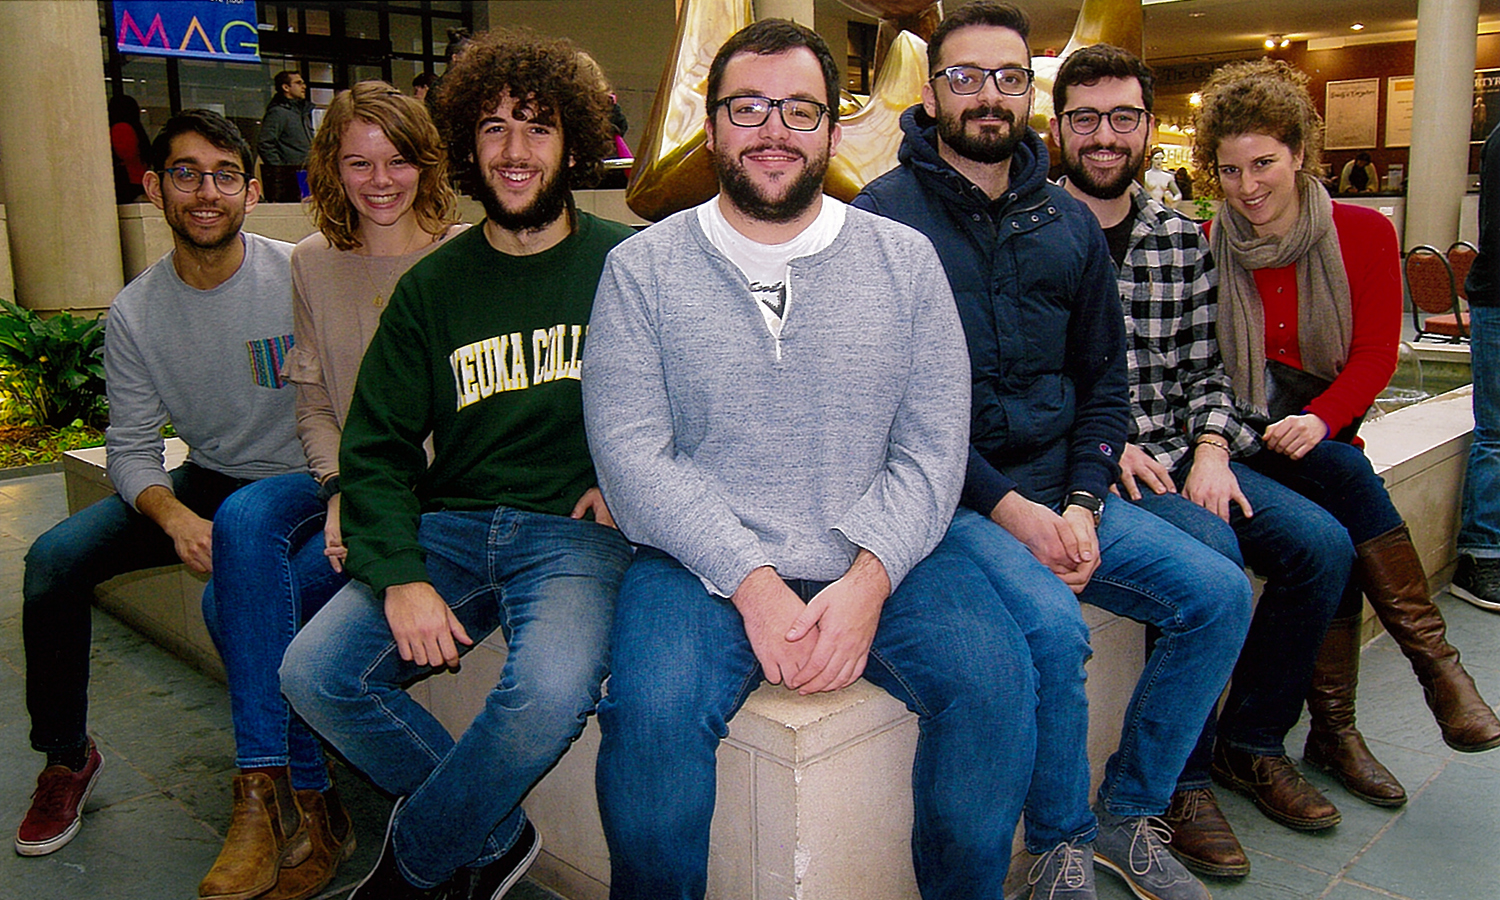 Kevin Collado '18, Ren Workman '18 Alejandro Rico, Spanish Fulbright teaching assistant at Keuka CollegeJuan Francisco Amand de Mendieta, Spanish Fulbright teaching assistant at Merrimack College, HWS Arabic Fulbright Teaching Fellow Augar Khoshaba and Graham Hughes '17​ pose for a photo after a visit to Black History Month exhibit at the Memorial Art Gallery in Rochester, N.Y.